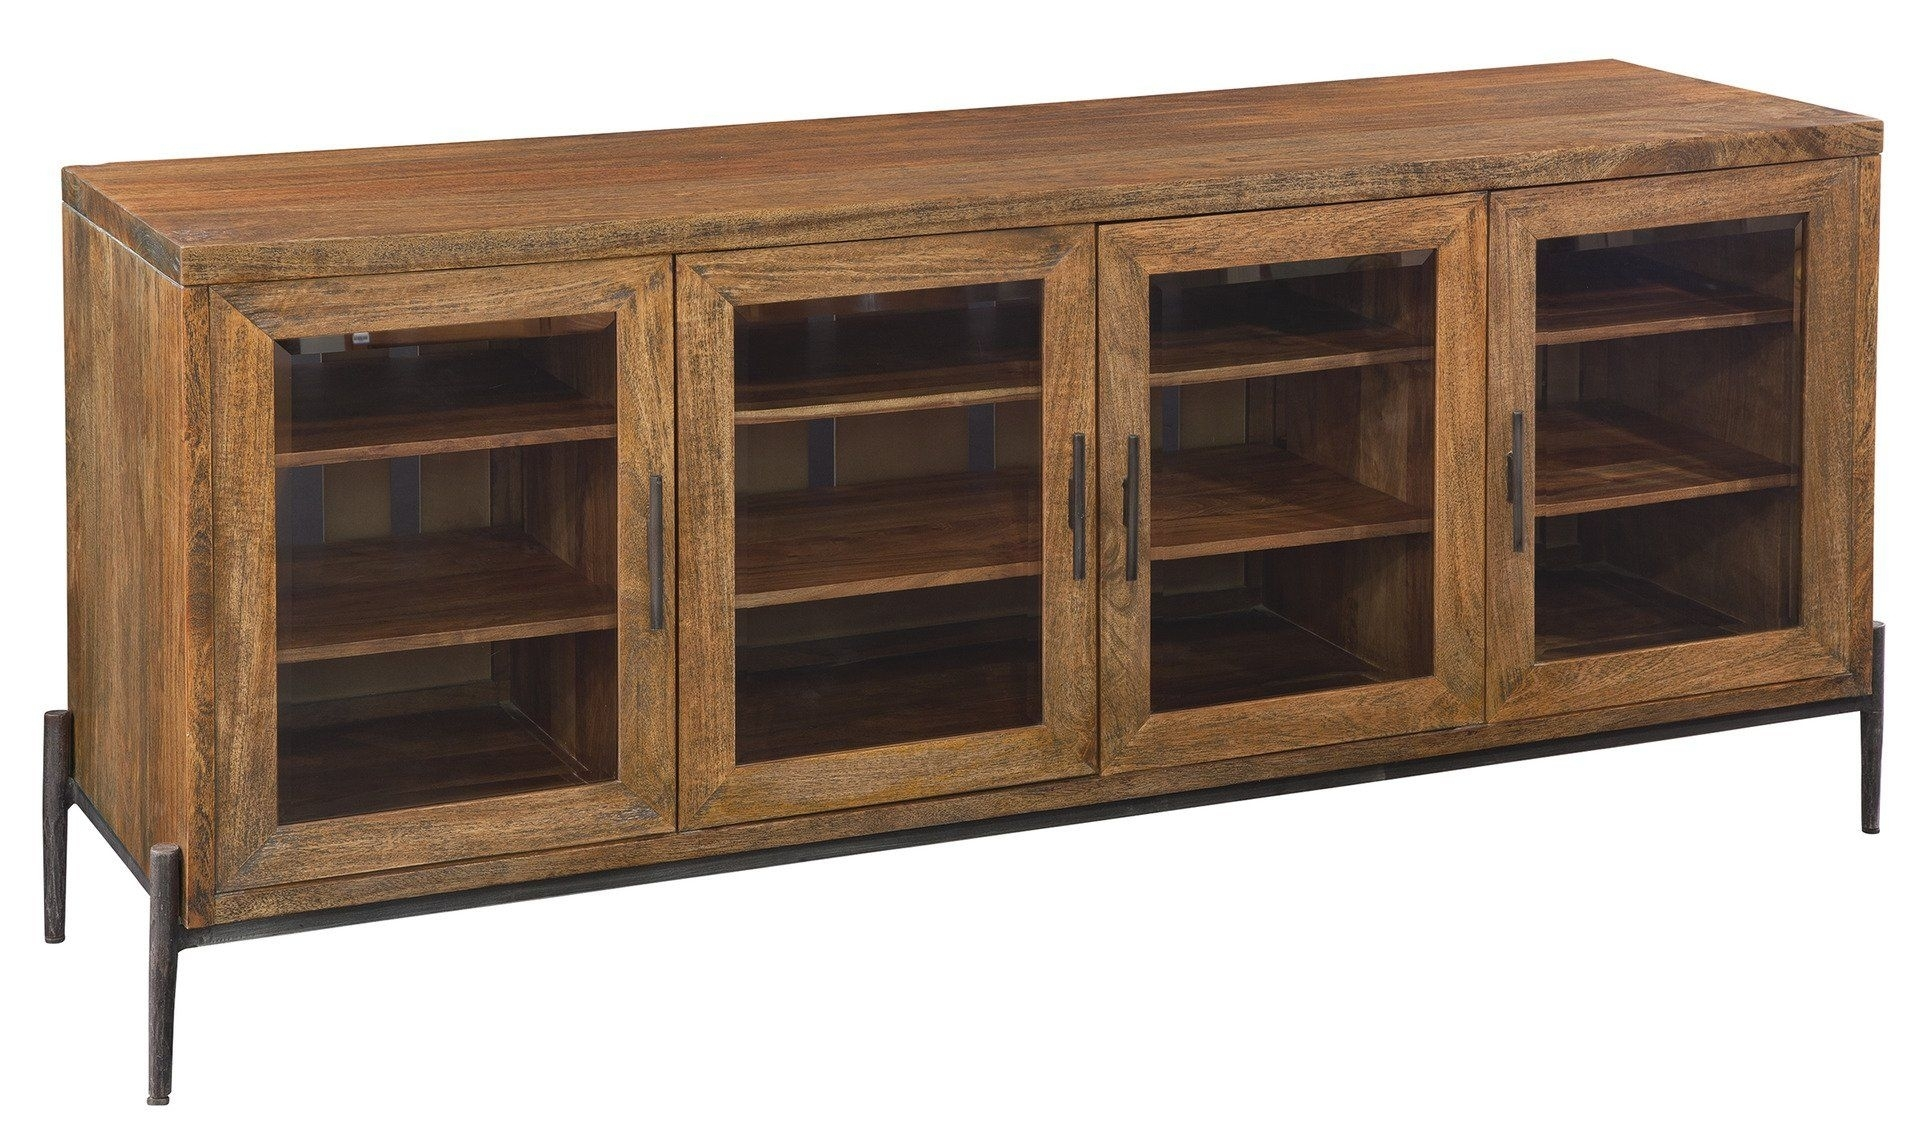 Davidson 74 | Iron And Products within Reclaimed Pine & Iron 72 Inch Sideboards (Image 8 of 30)